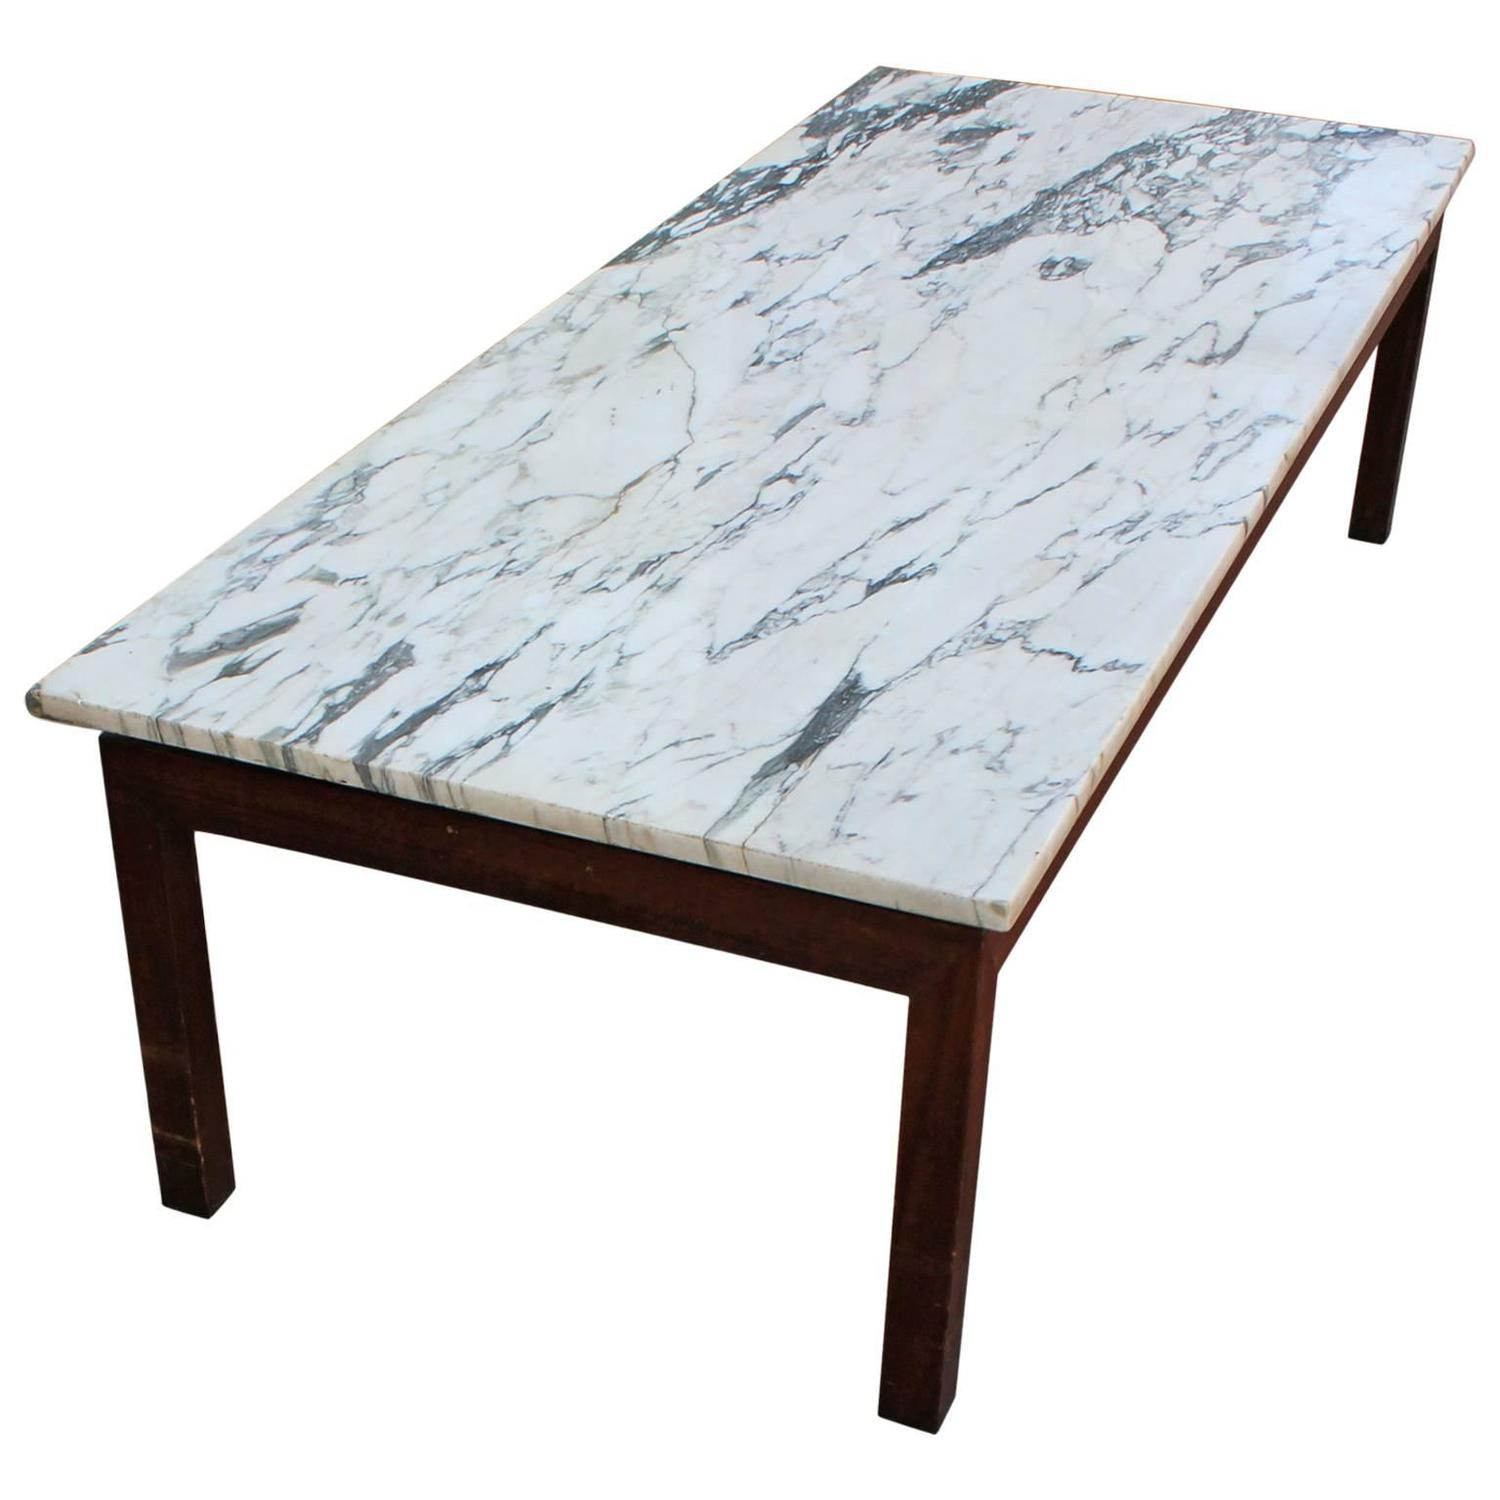 Marble Coffee Table For Sale Singapore: Clean Lined Walnut And Marble Coffee Table For Sale At 1stdibs